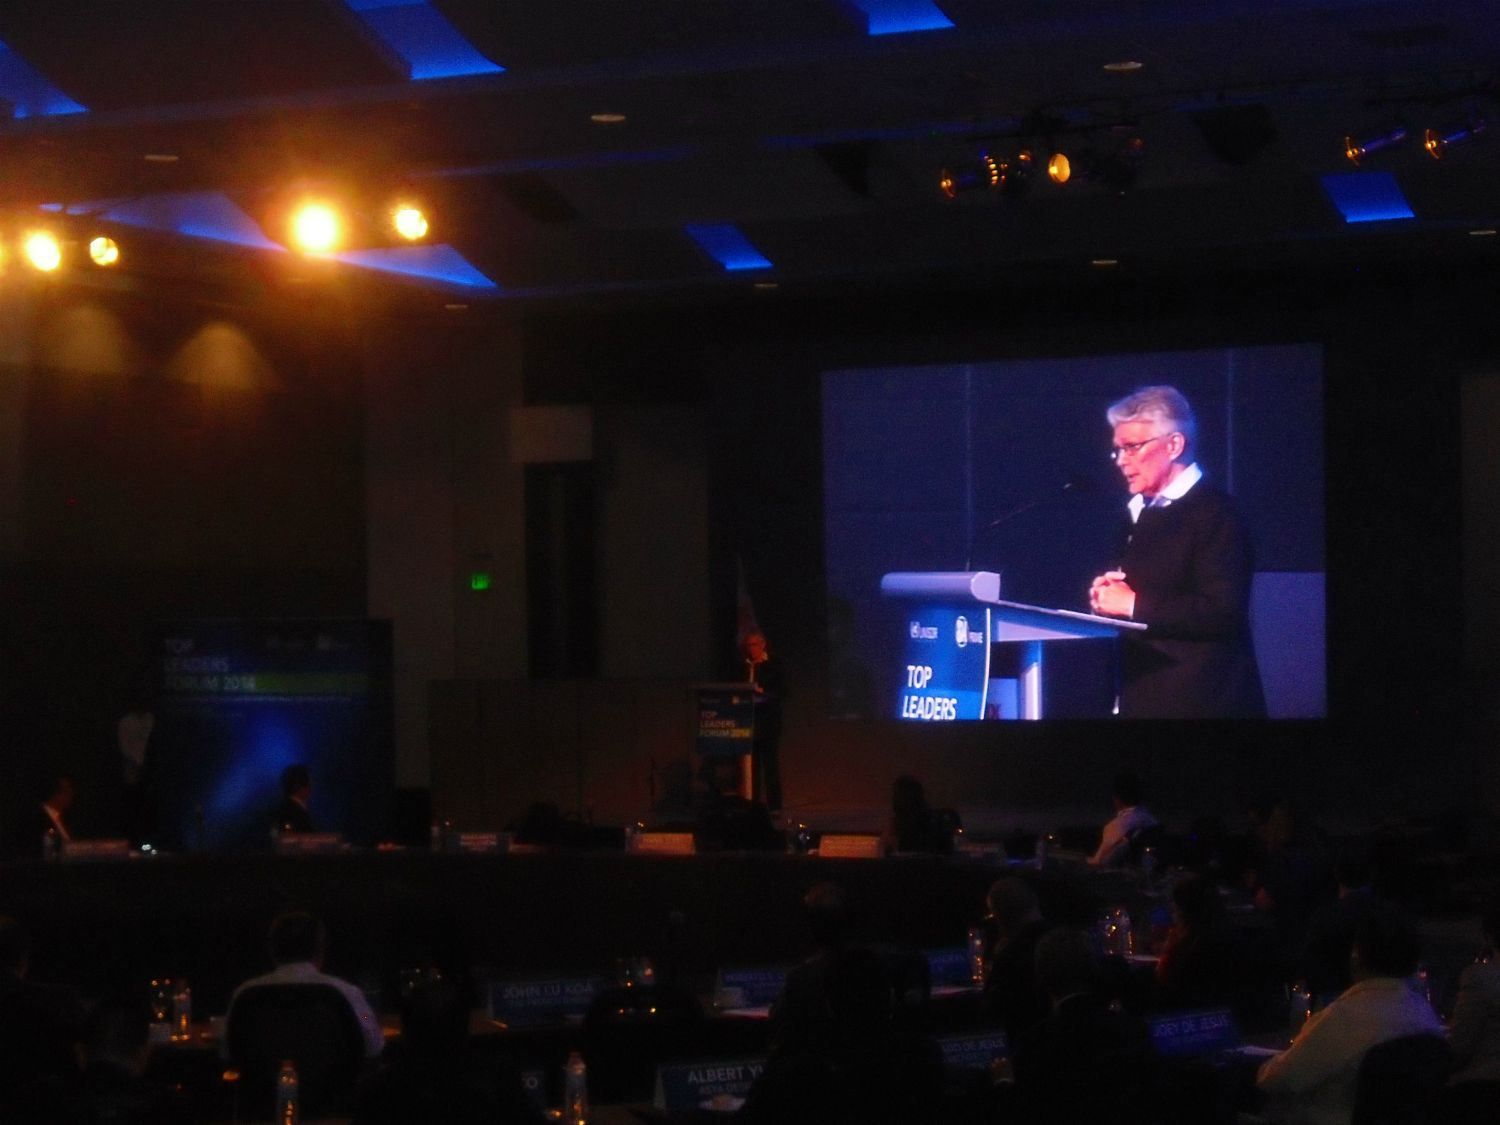 Top Leaders Review Disaster Risk Reduction Strategies and